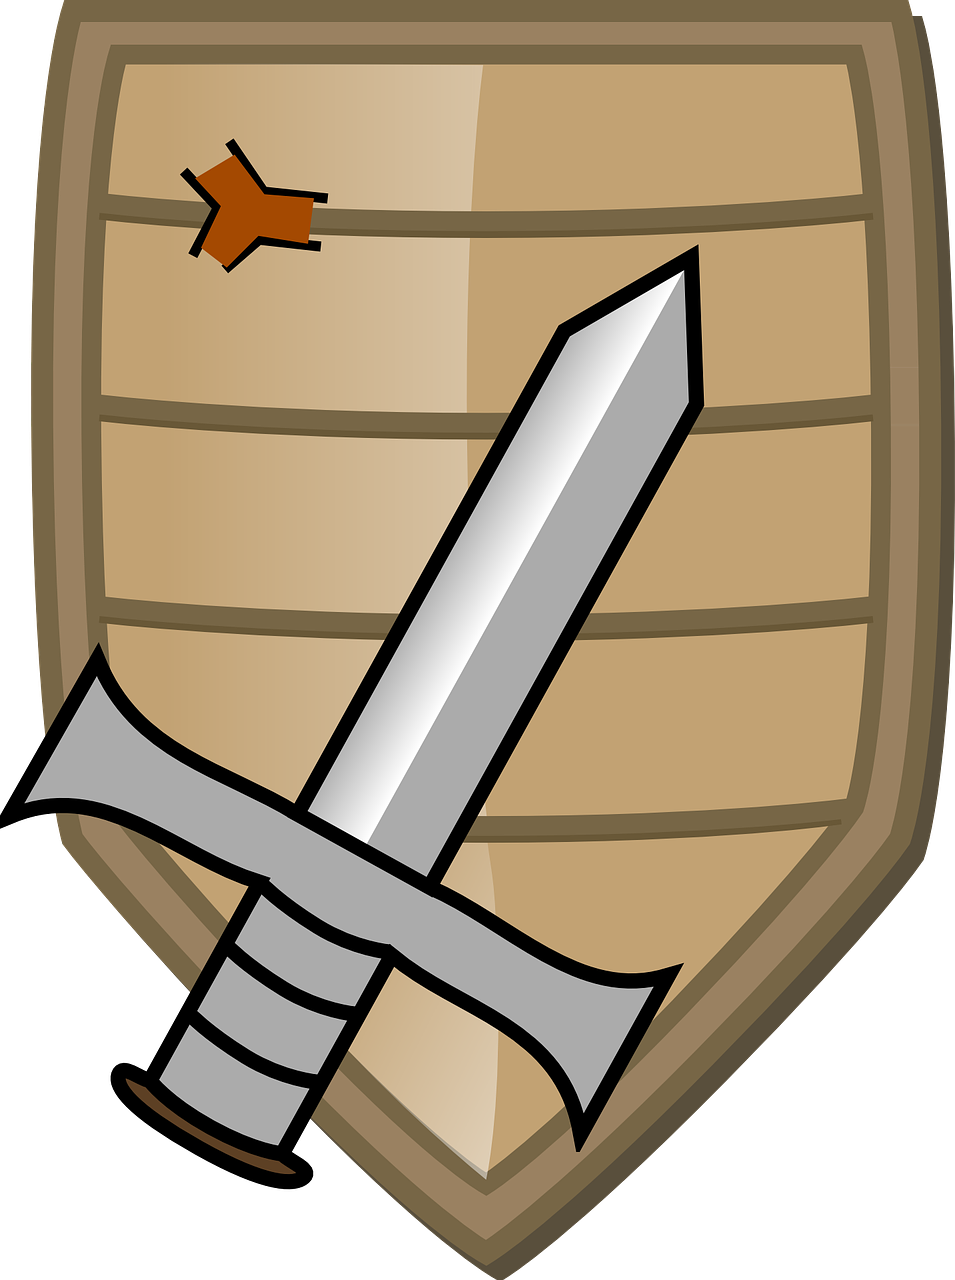 Sword,shield,knight,coat of arms,medieval.